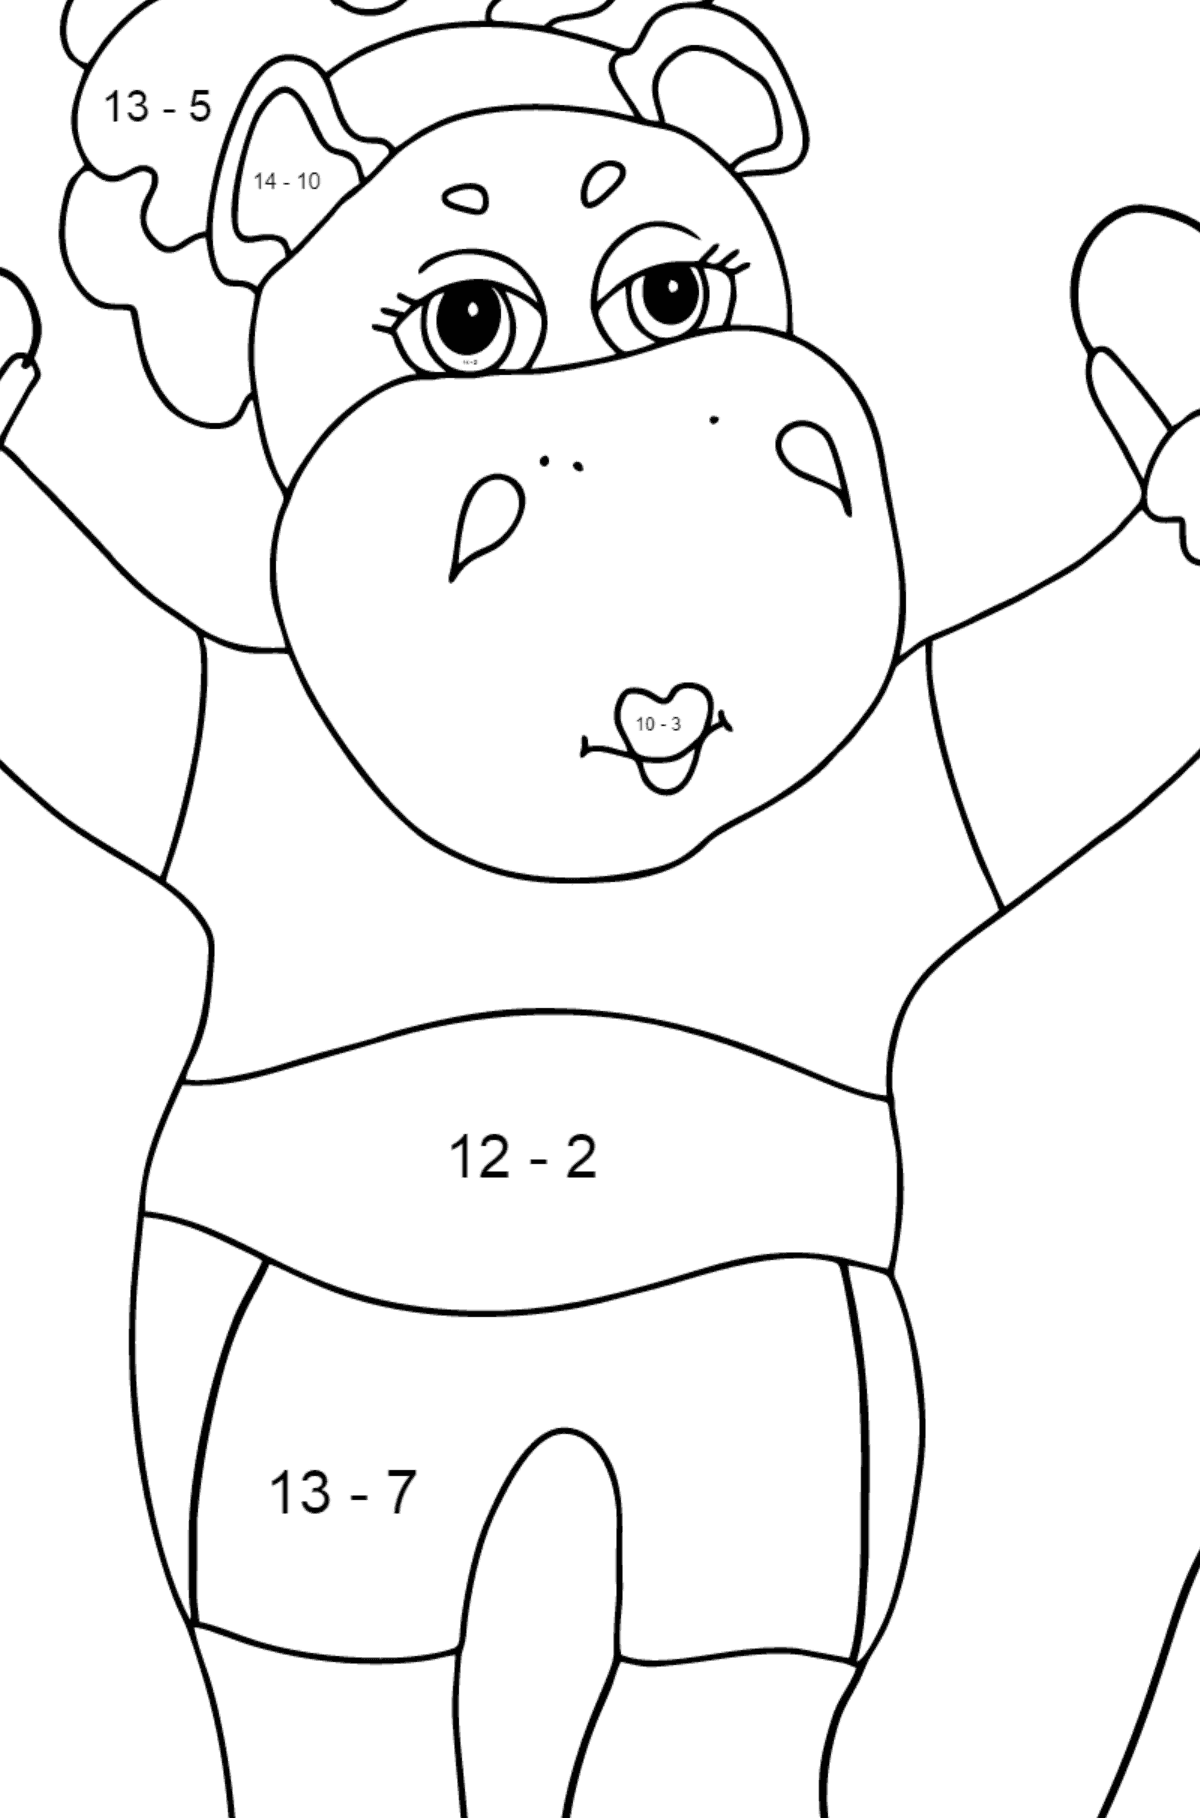 Coloring Page - A Hippo with a Jump Rope for Kids  - Color by Number Substraction